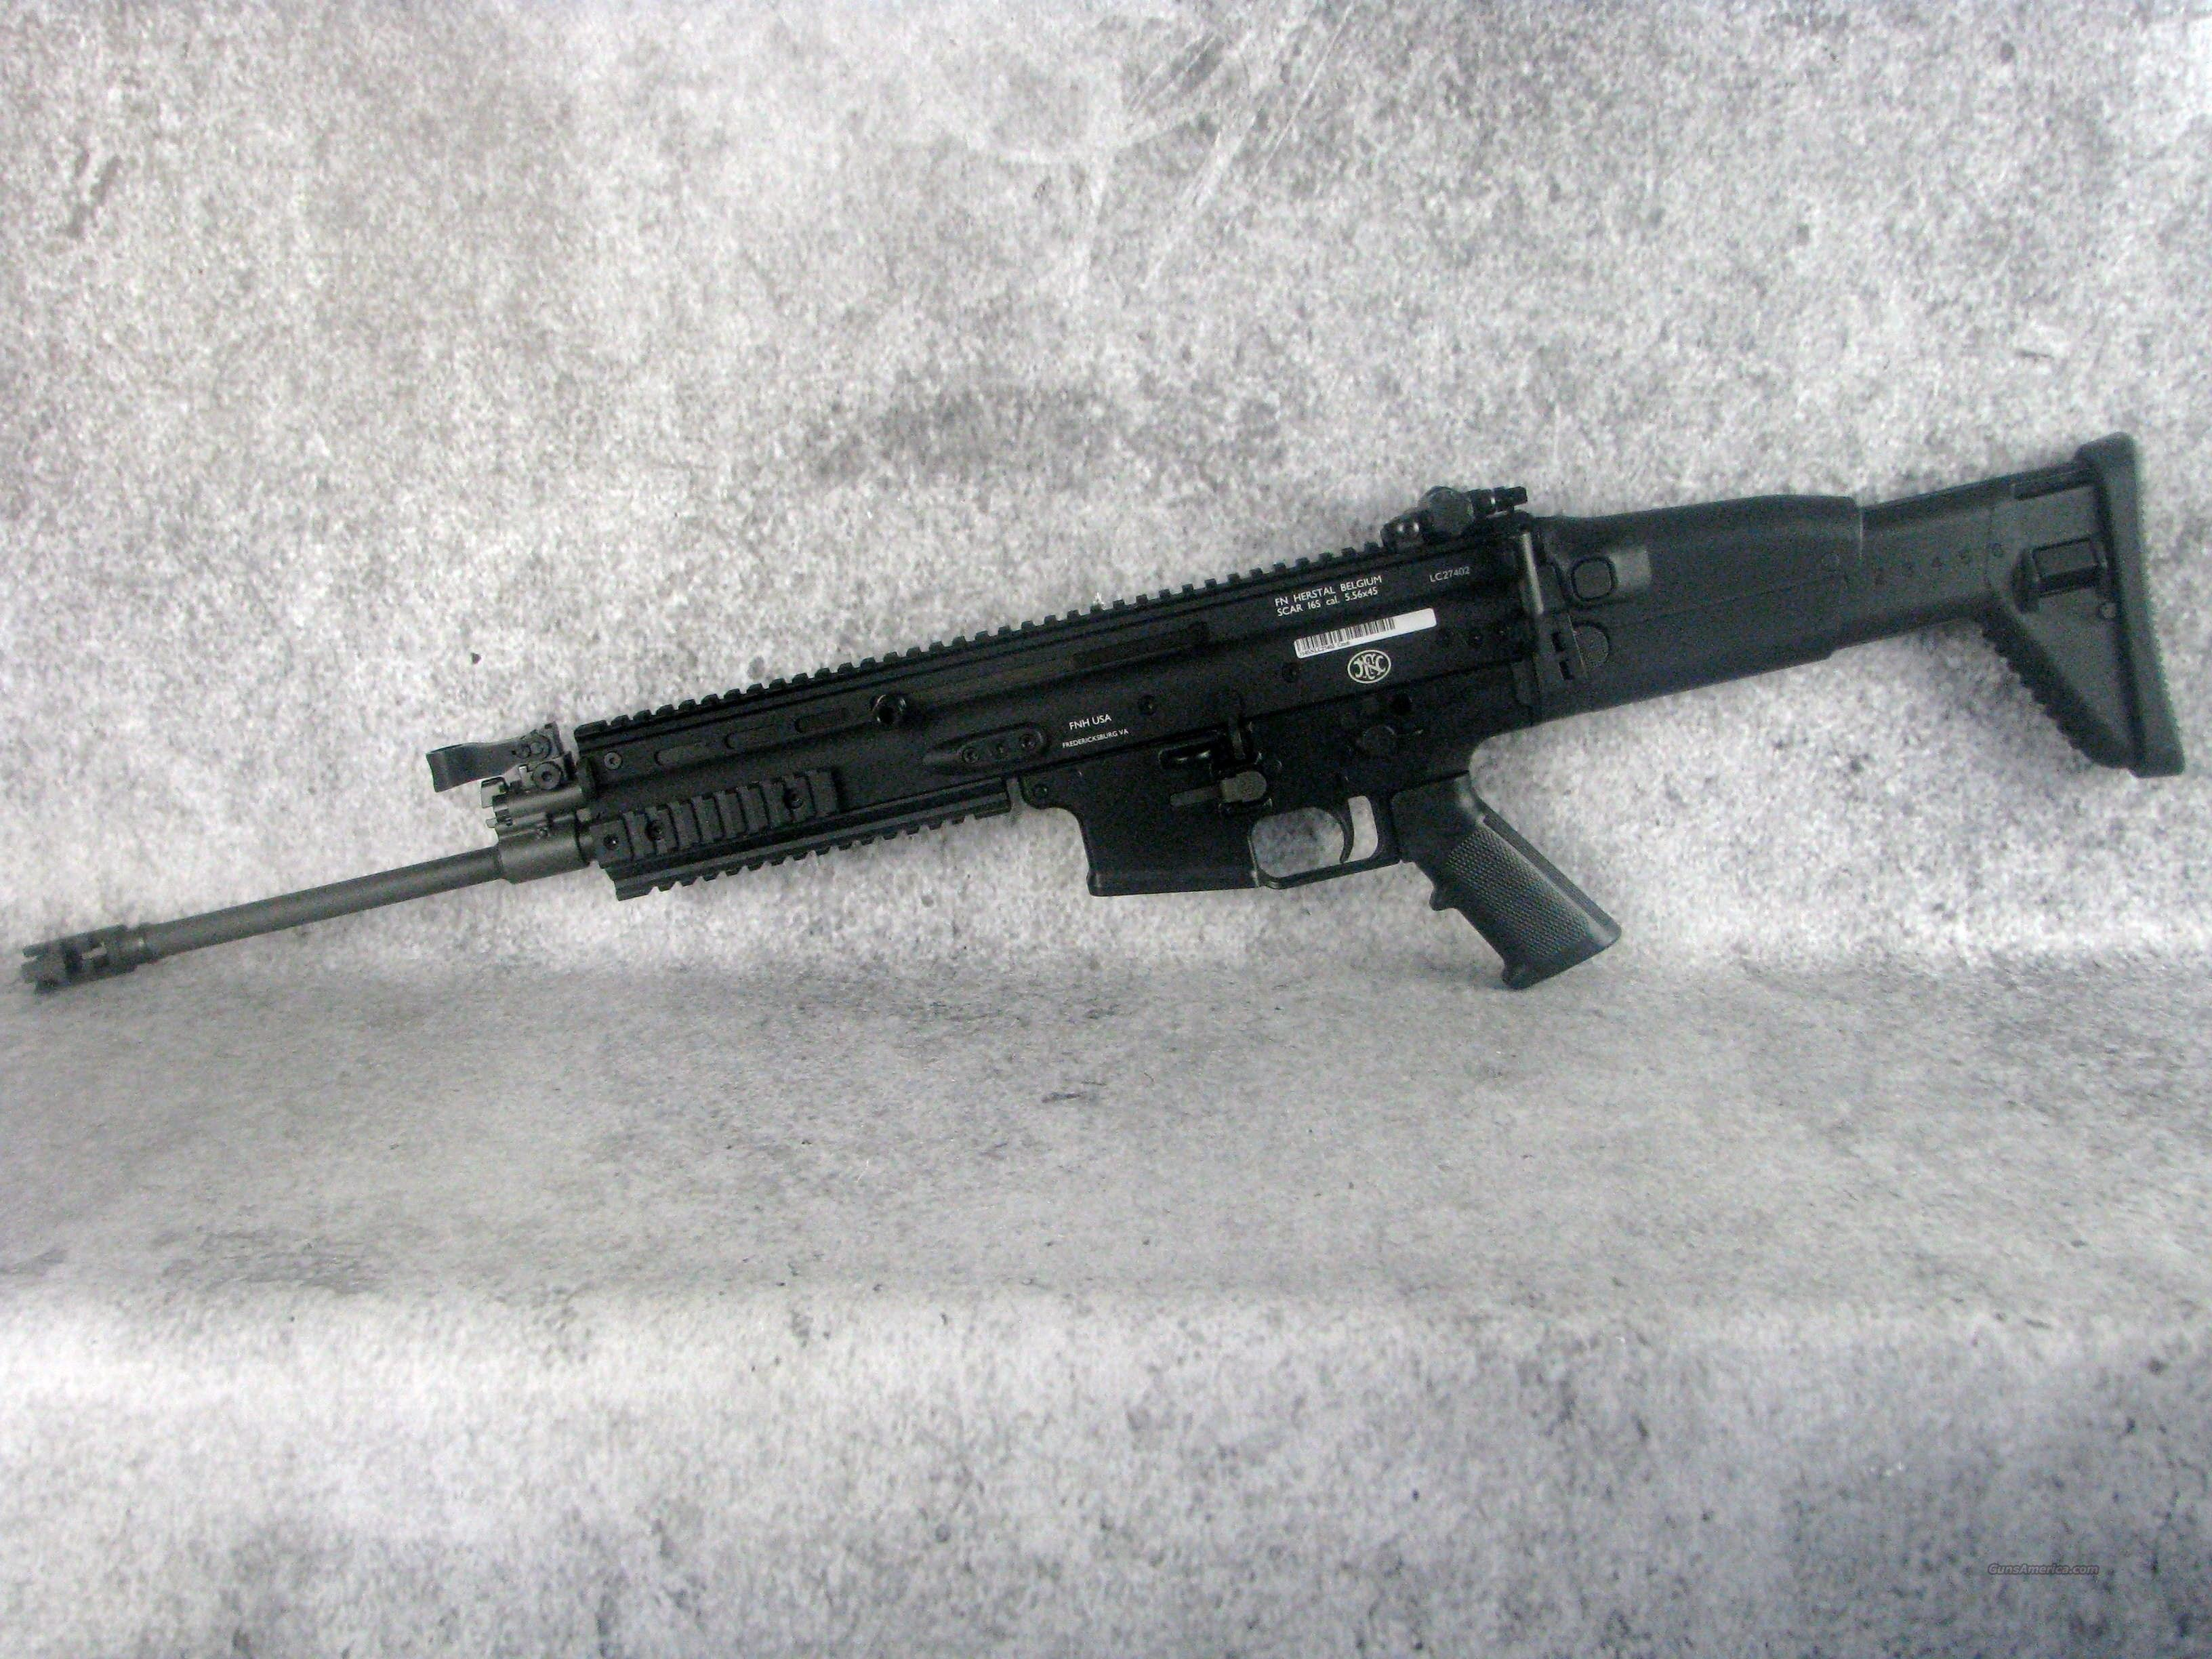 FNH SCAR 5.56 223 98521 /EASY PAY $232  Guns > Rifles > FNH - Fabrique Nationale (FN) Rifles > Semi-auto > Other